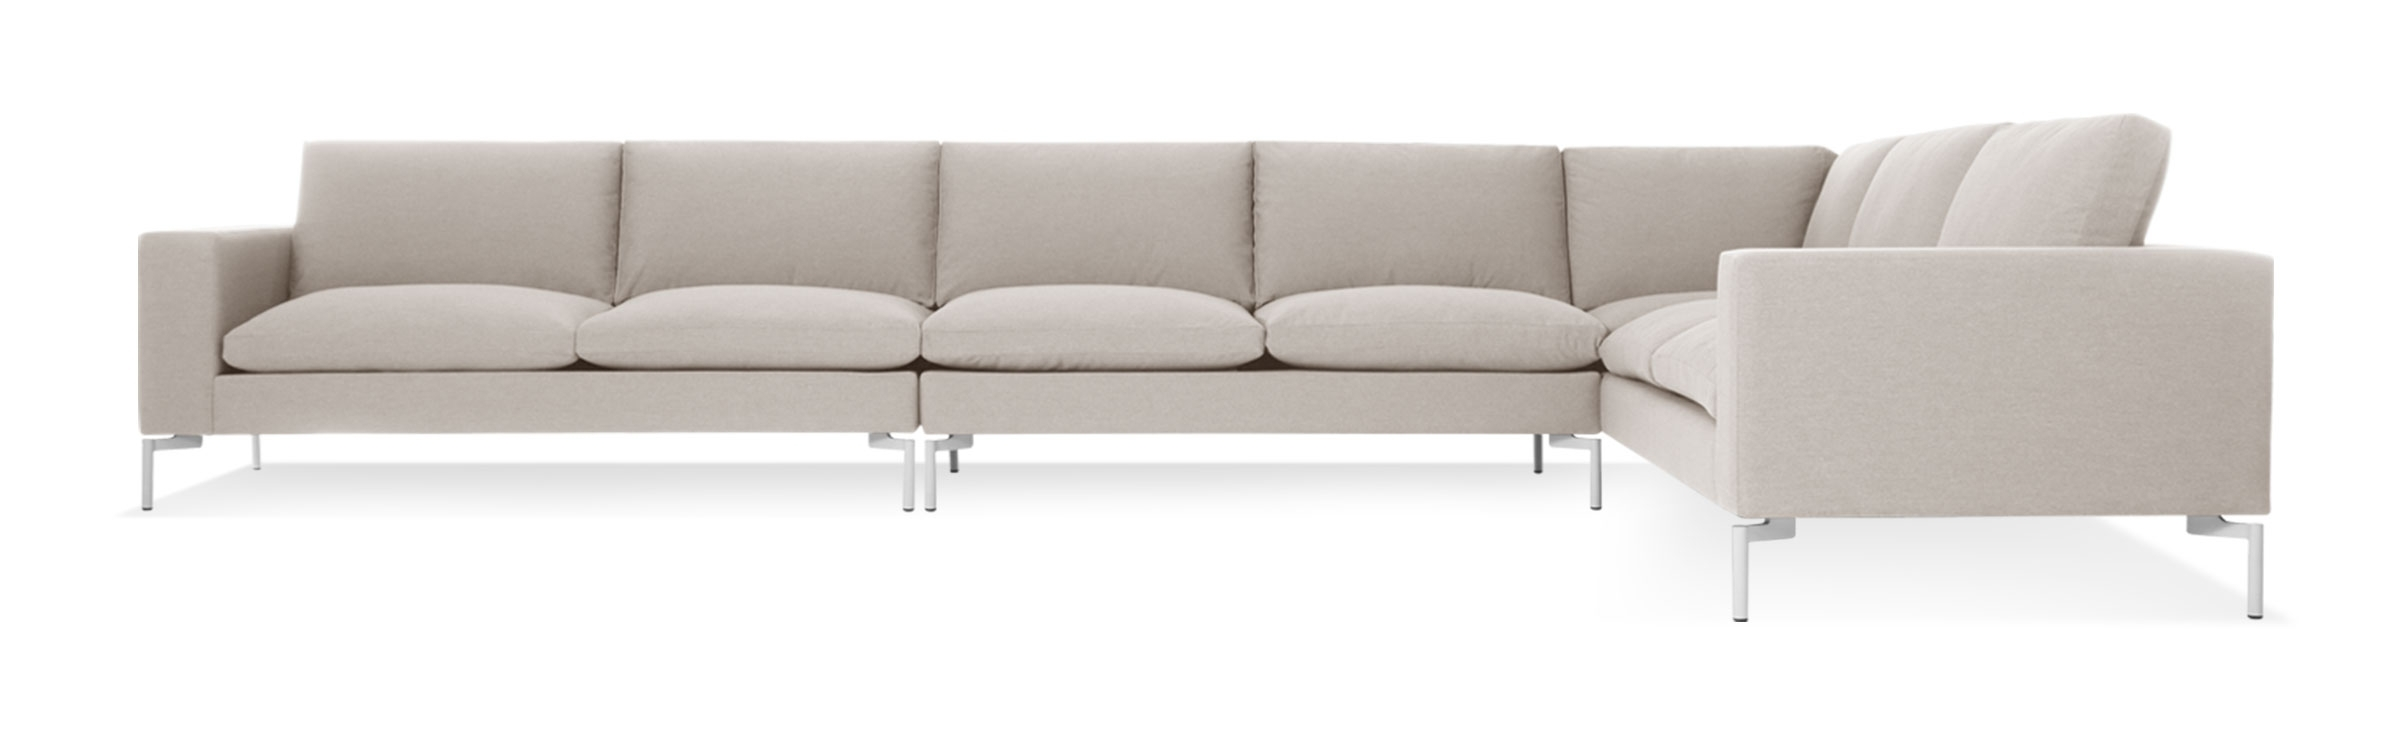 Furniture : Sectional Sofa Sizes Buy Sectional Vancouver Corner Pertaining To Fashionable Greenville Nc Sectional Sofas (View 4 of 20)